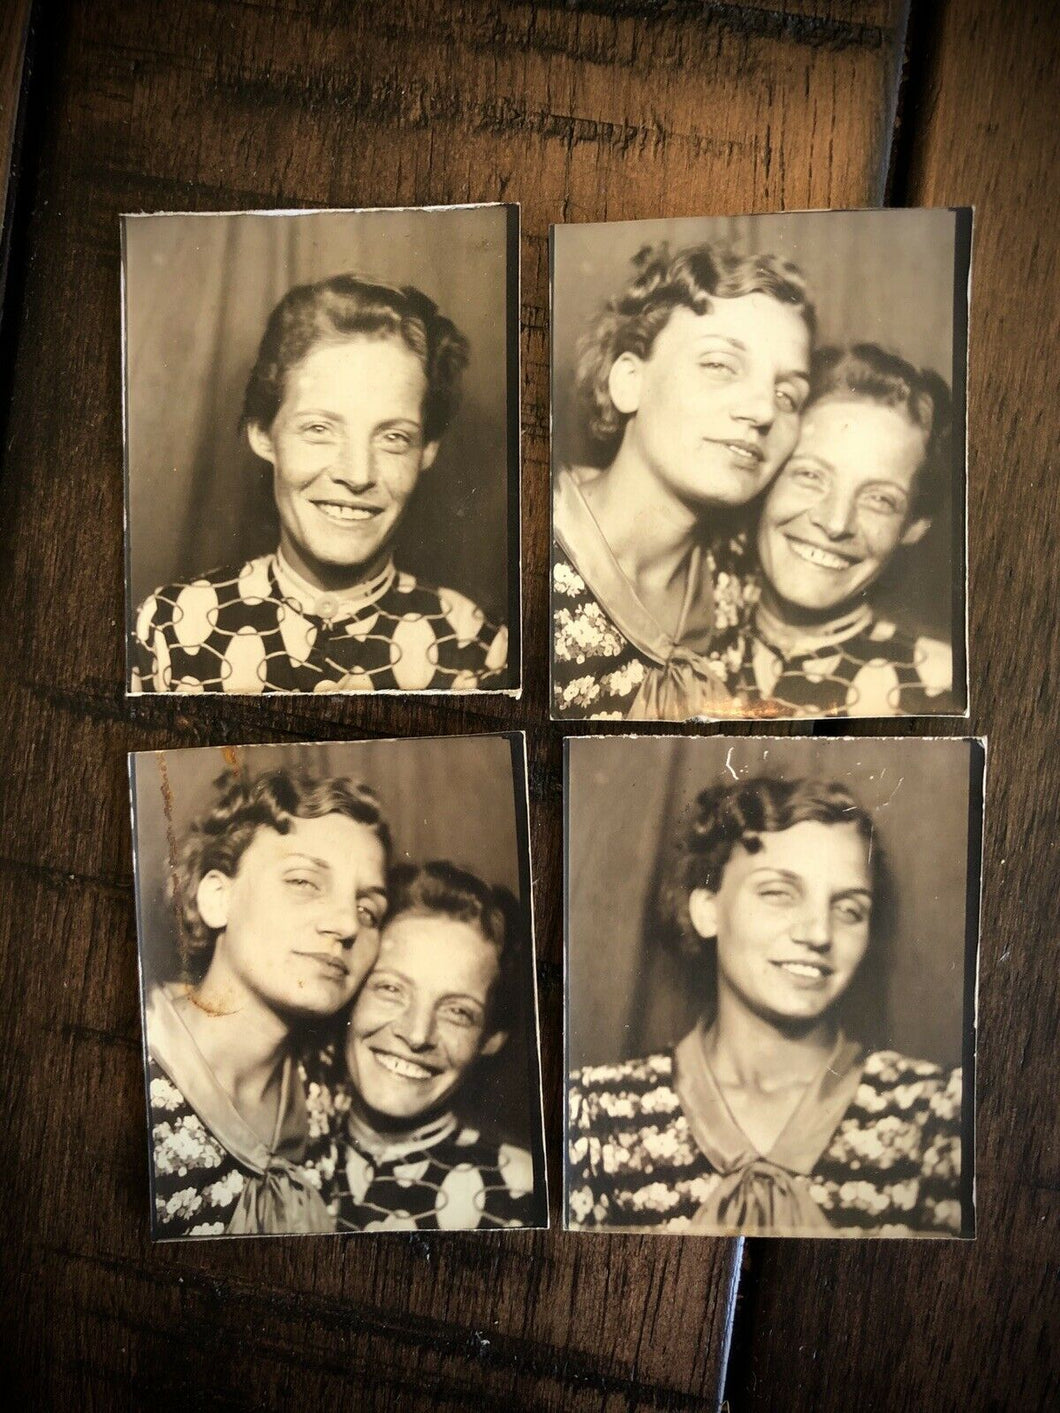 Four Photo Booth Snaps Of Same Two Women 1930s 1940s, Photobooth Lot